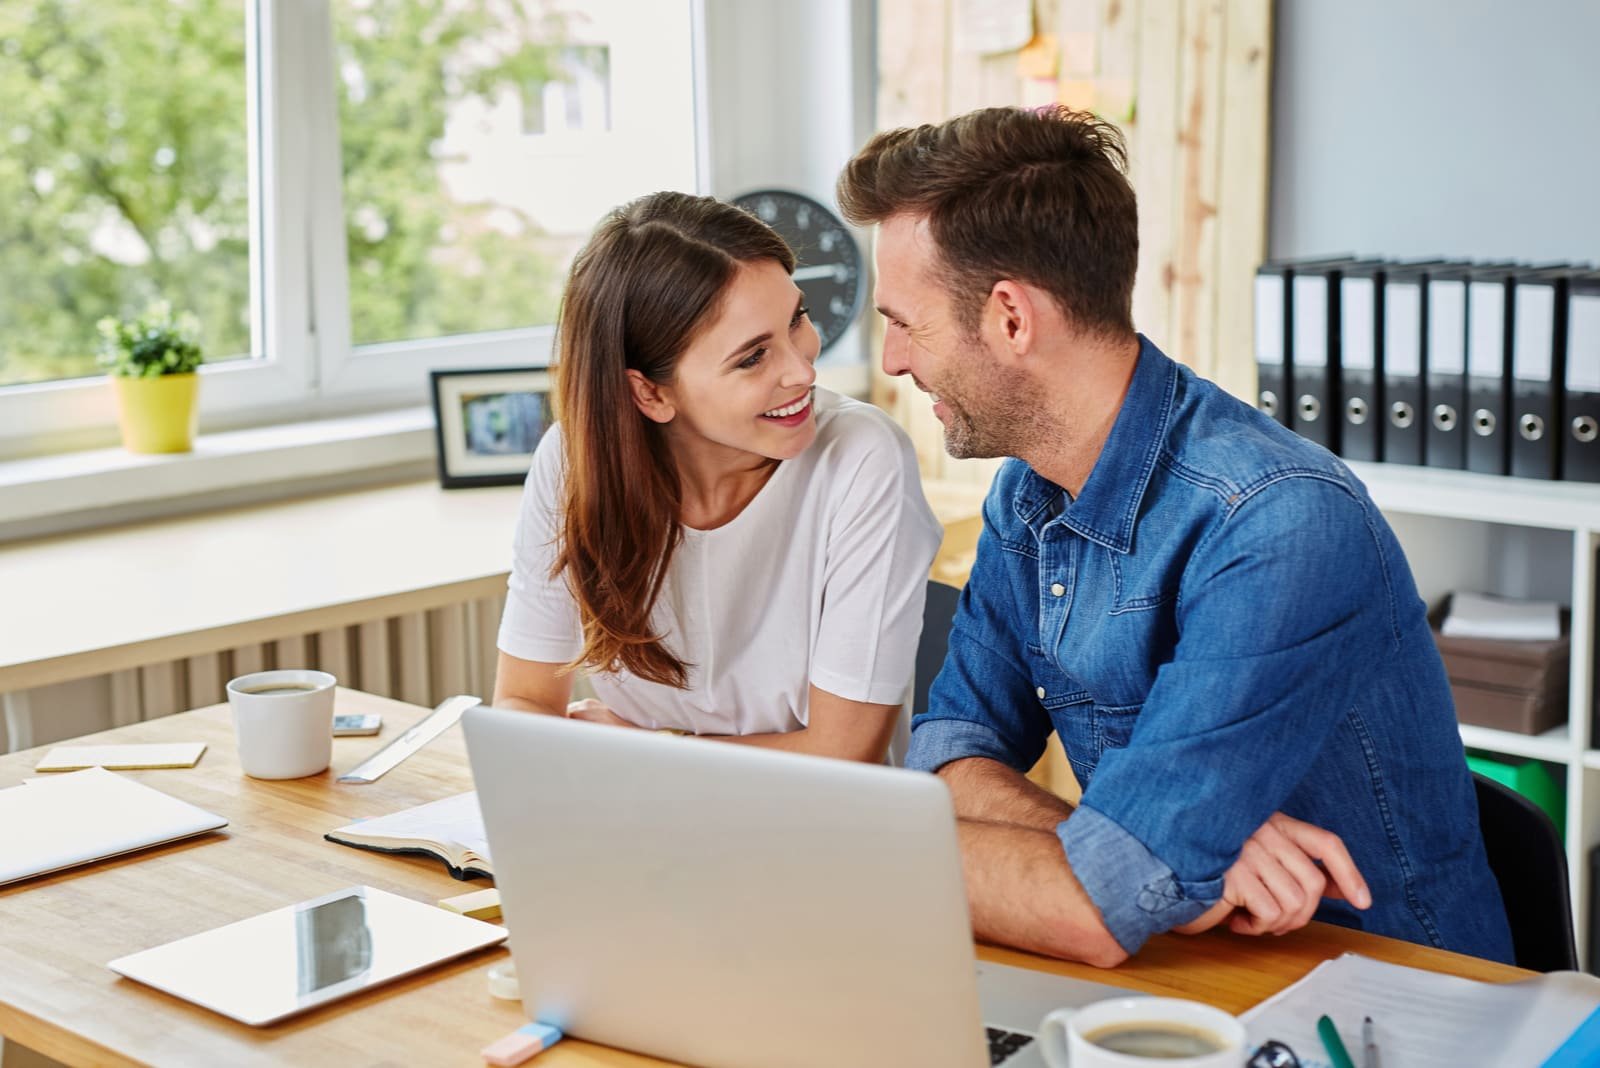 a smiling loving couple doing something on a laptop